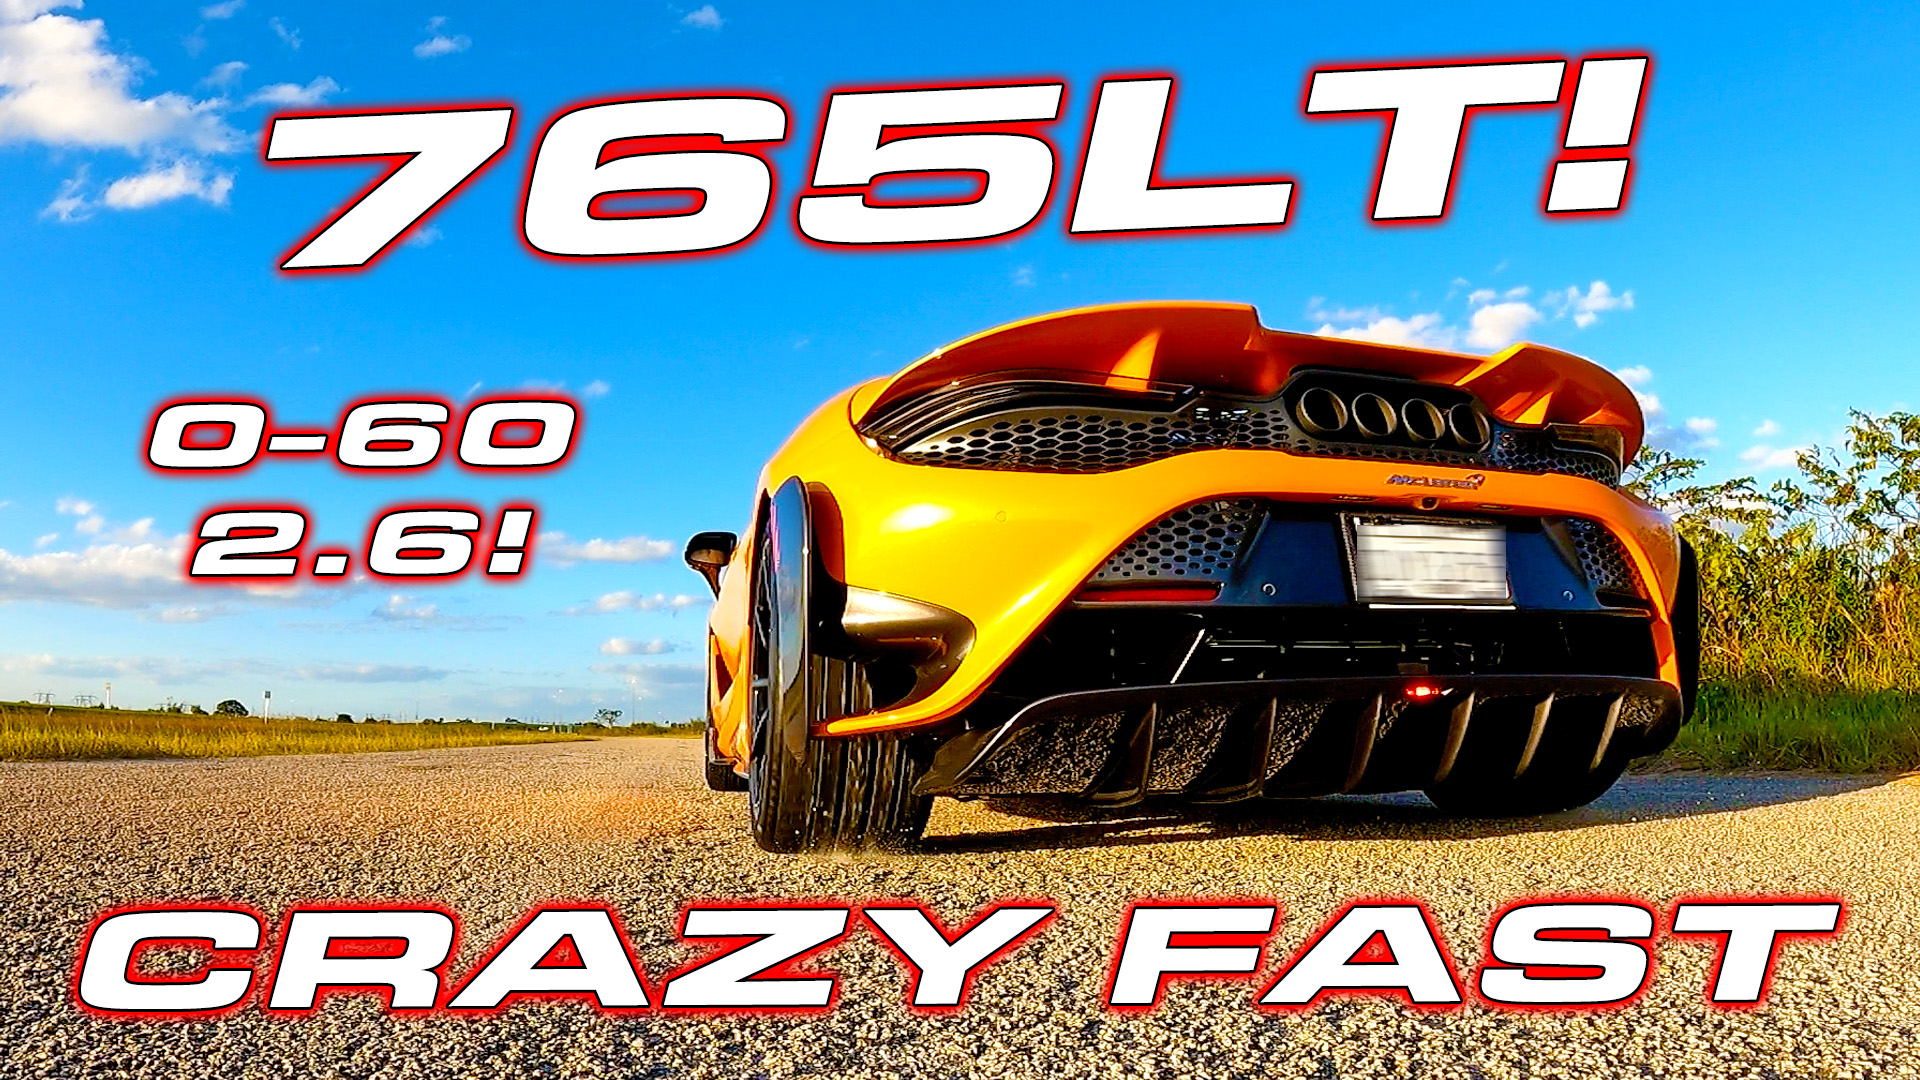 McLaren 765LT 1/4 Mile Street Testing – Quickest Production Car?